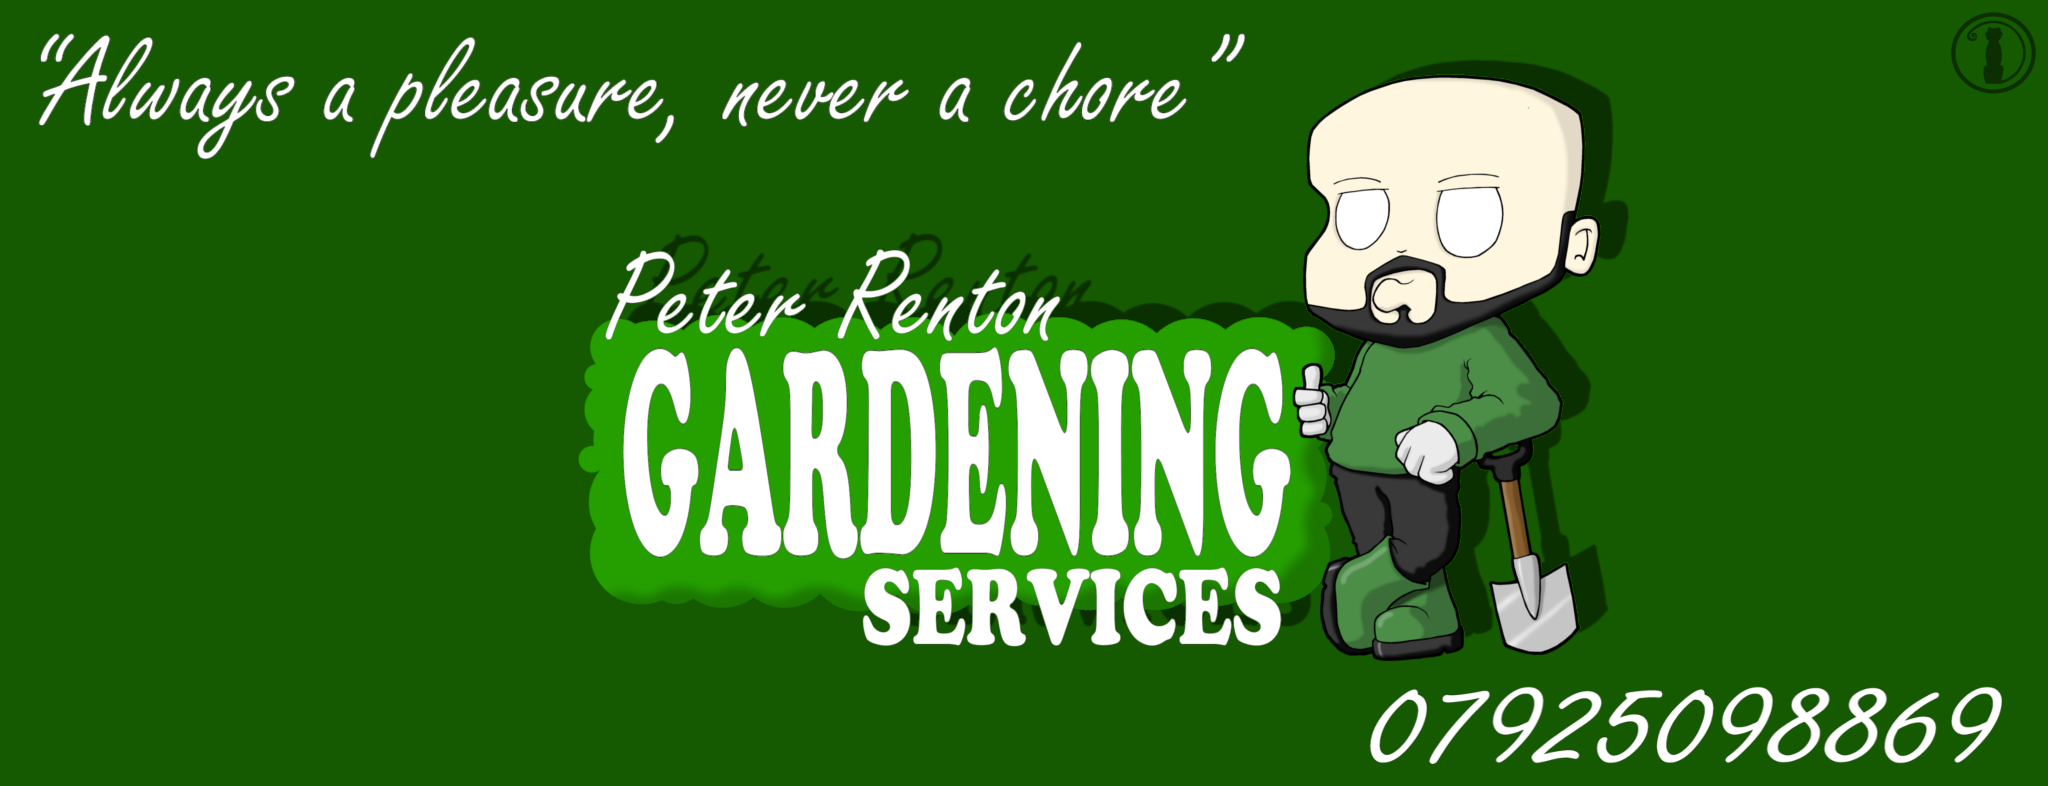 Peter Renton - Gardeing Sevices FB Cover 02.png